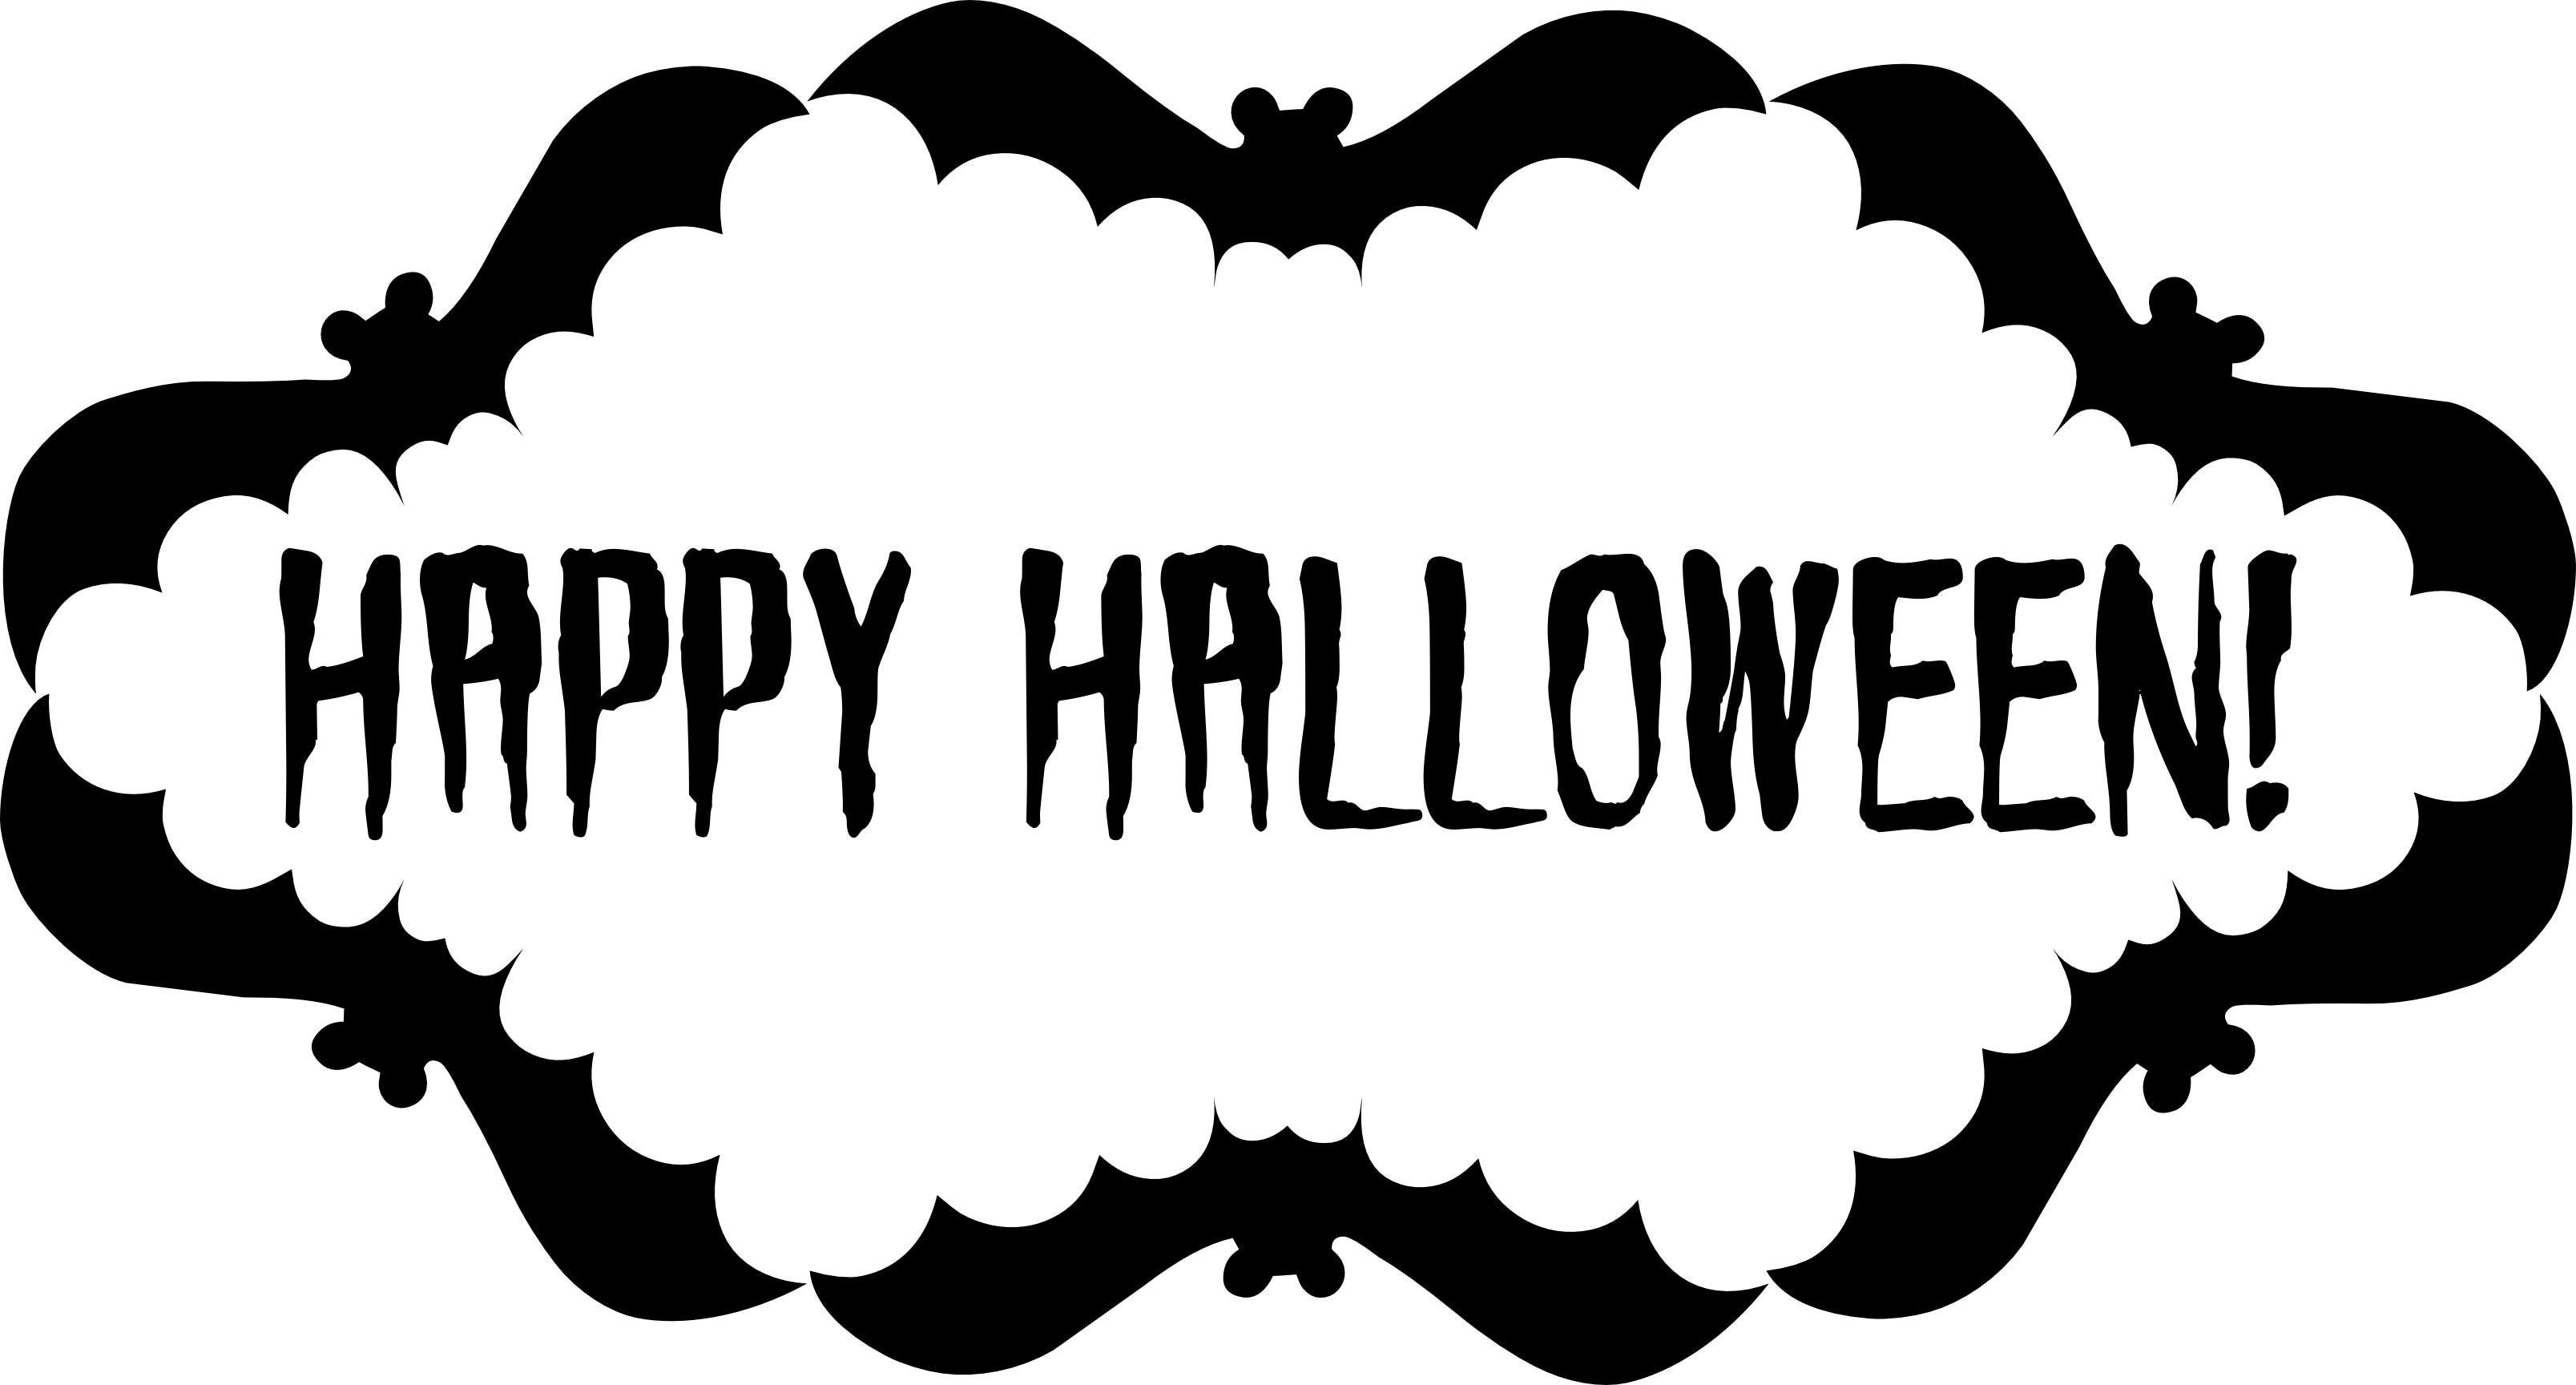 Printable Halloween Decorations Template - Here Comes Halloween 2018! - Free Printable Halloween Decorations